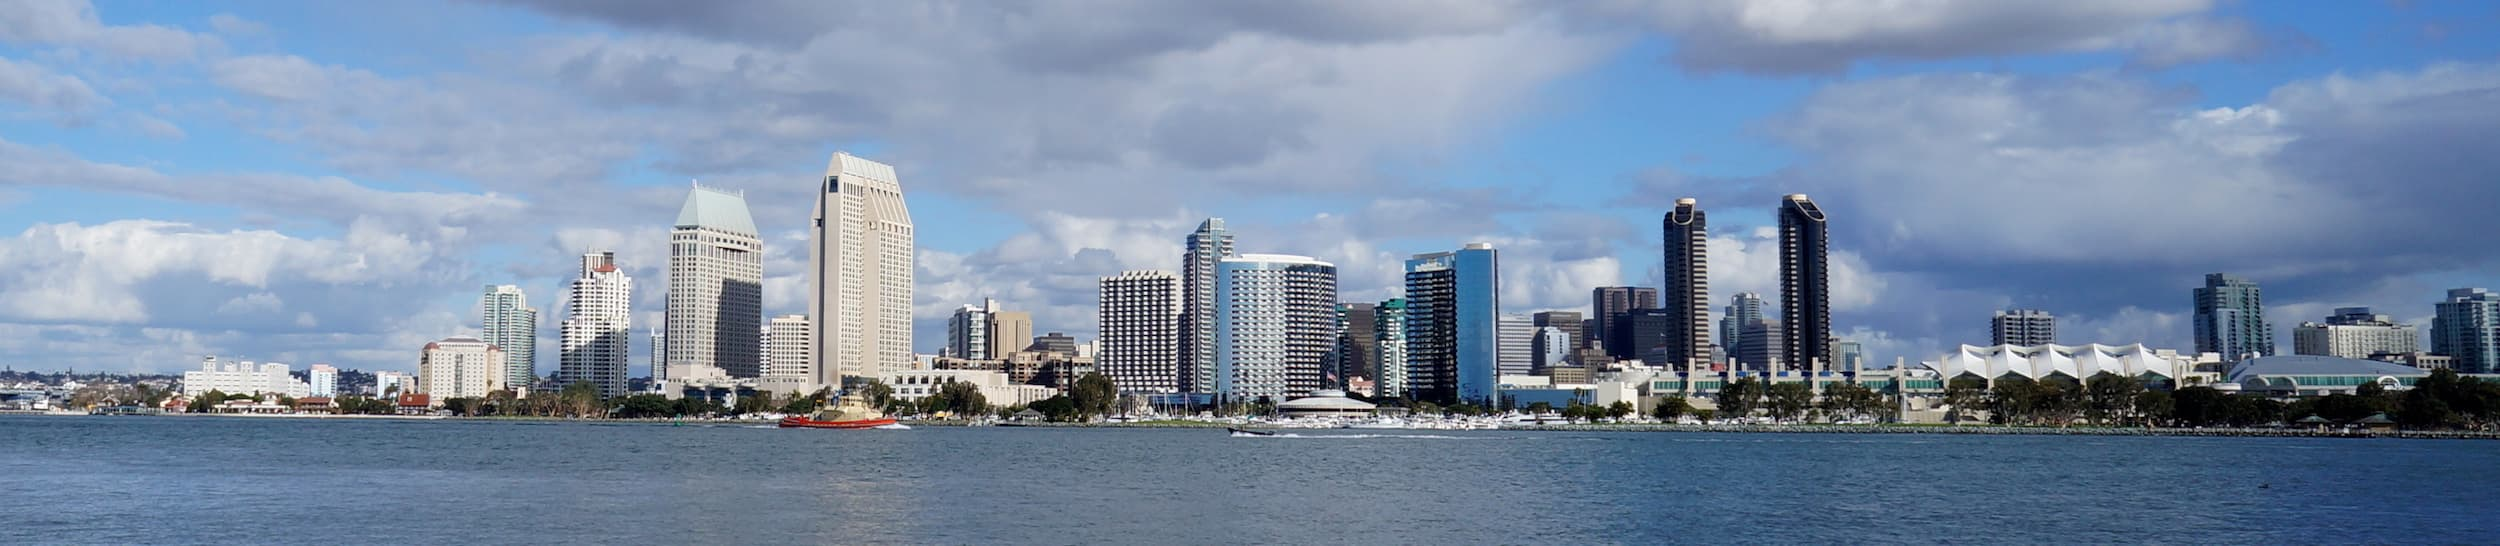 Skyline of San Diego